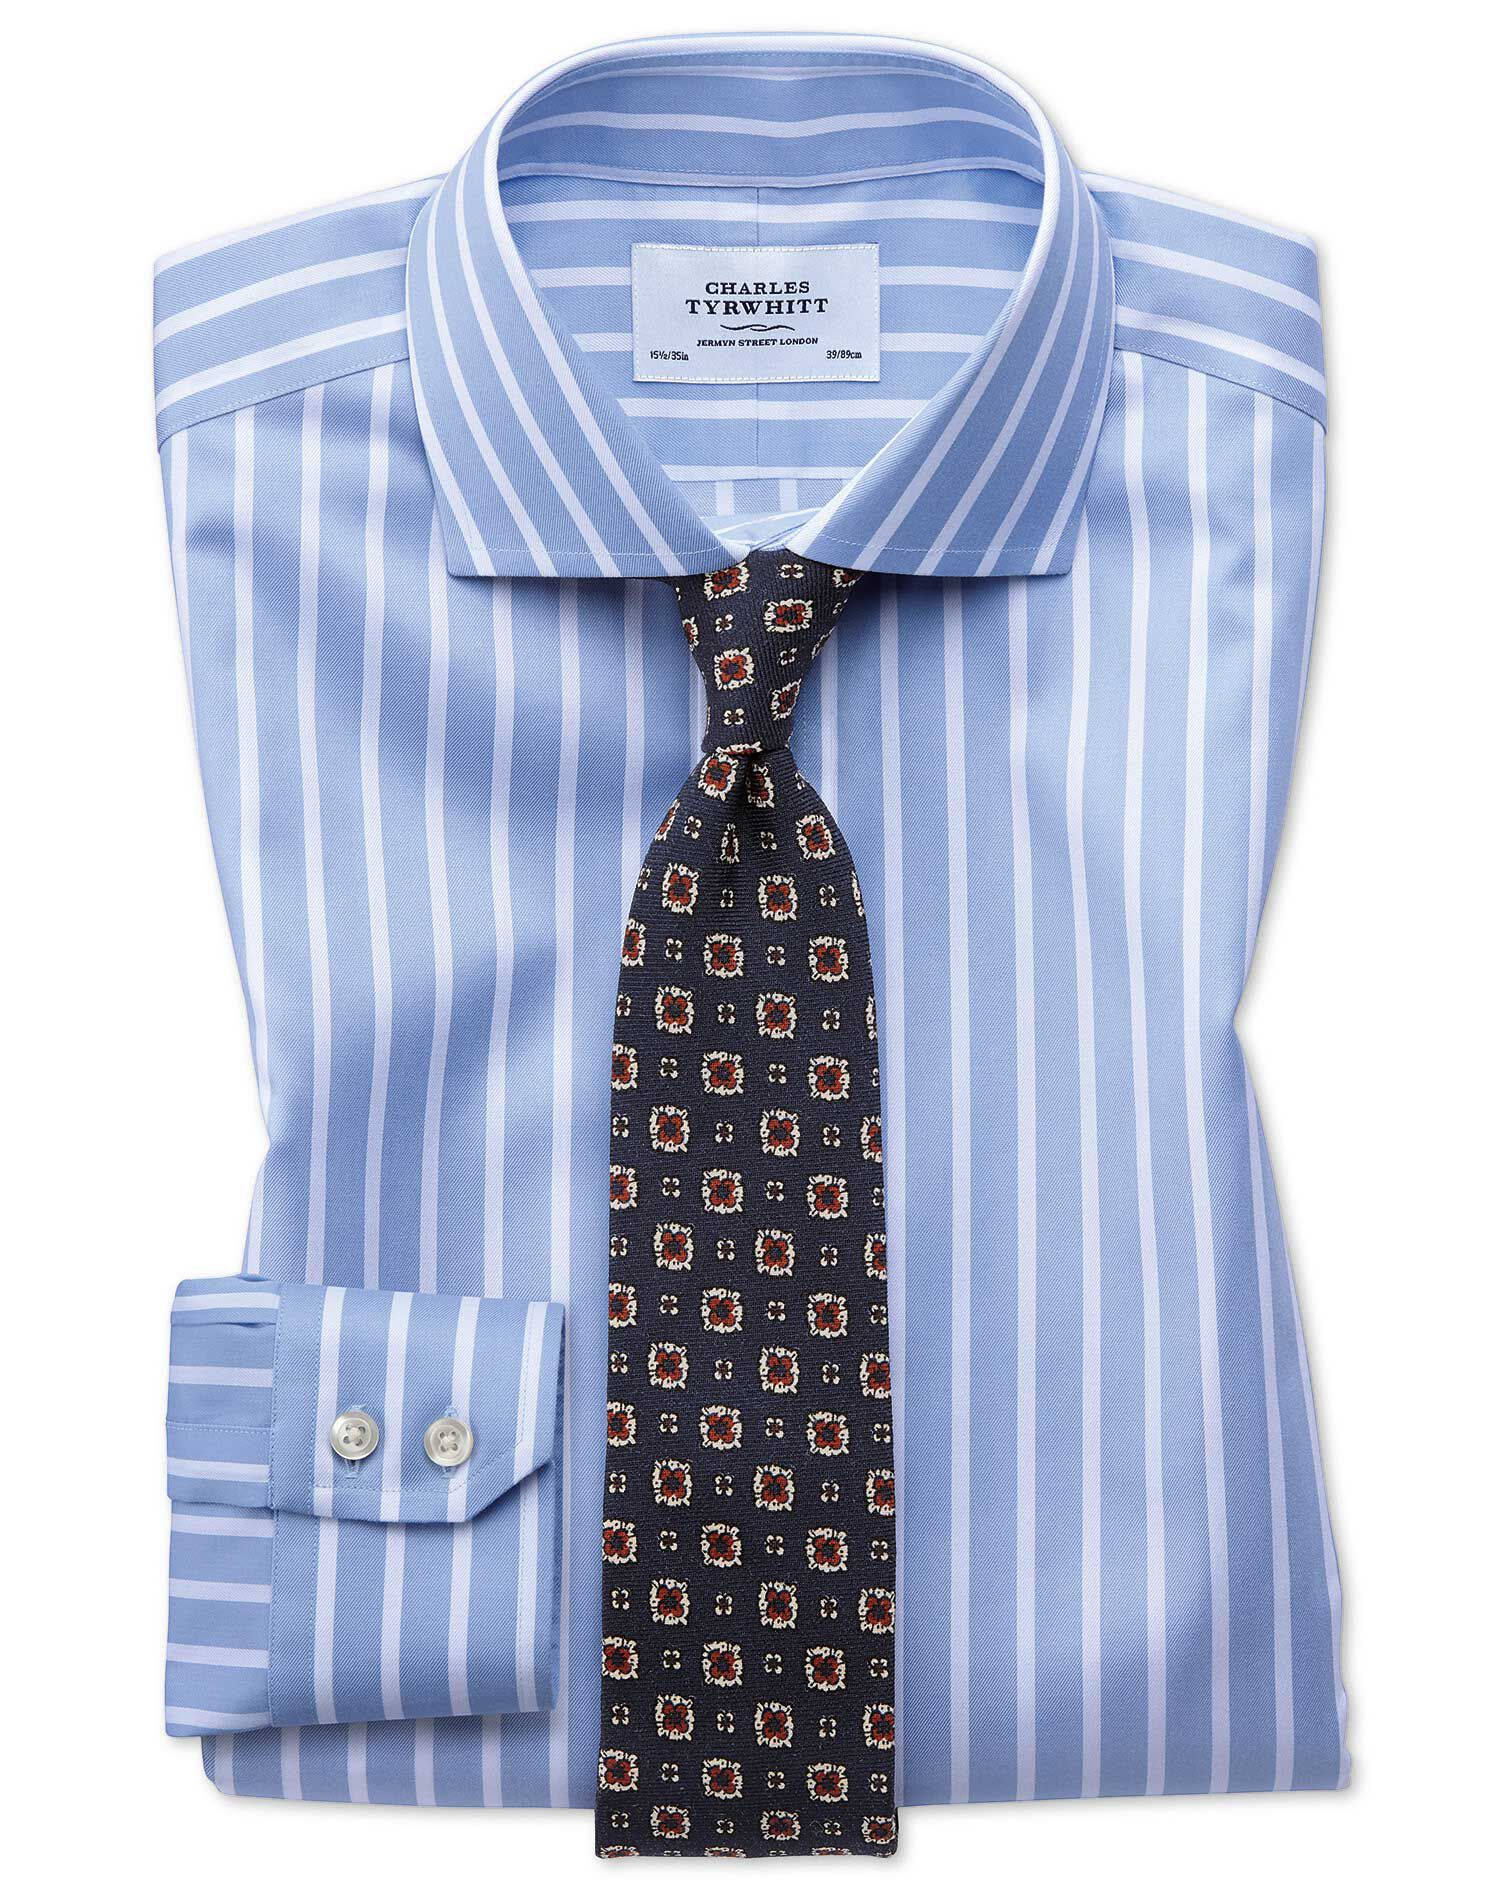 Extra Slim Fit Cutaway Non-Iron Bengal Wide Stripe Sky Blue and White Cotton Formal Shirt Double Cuf